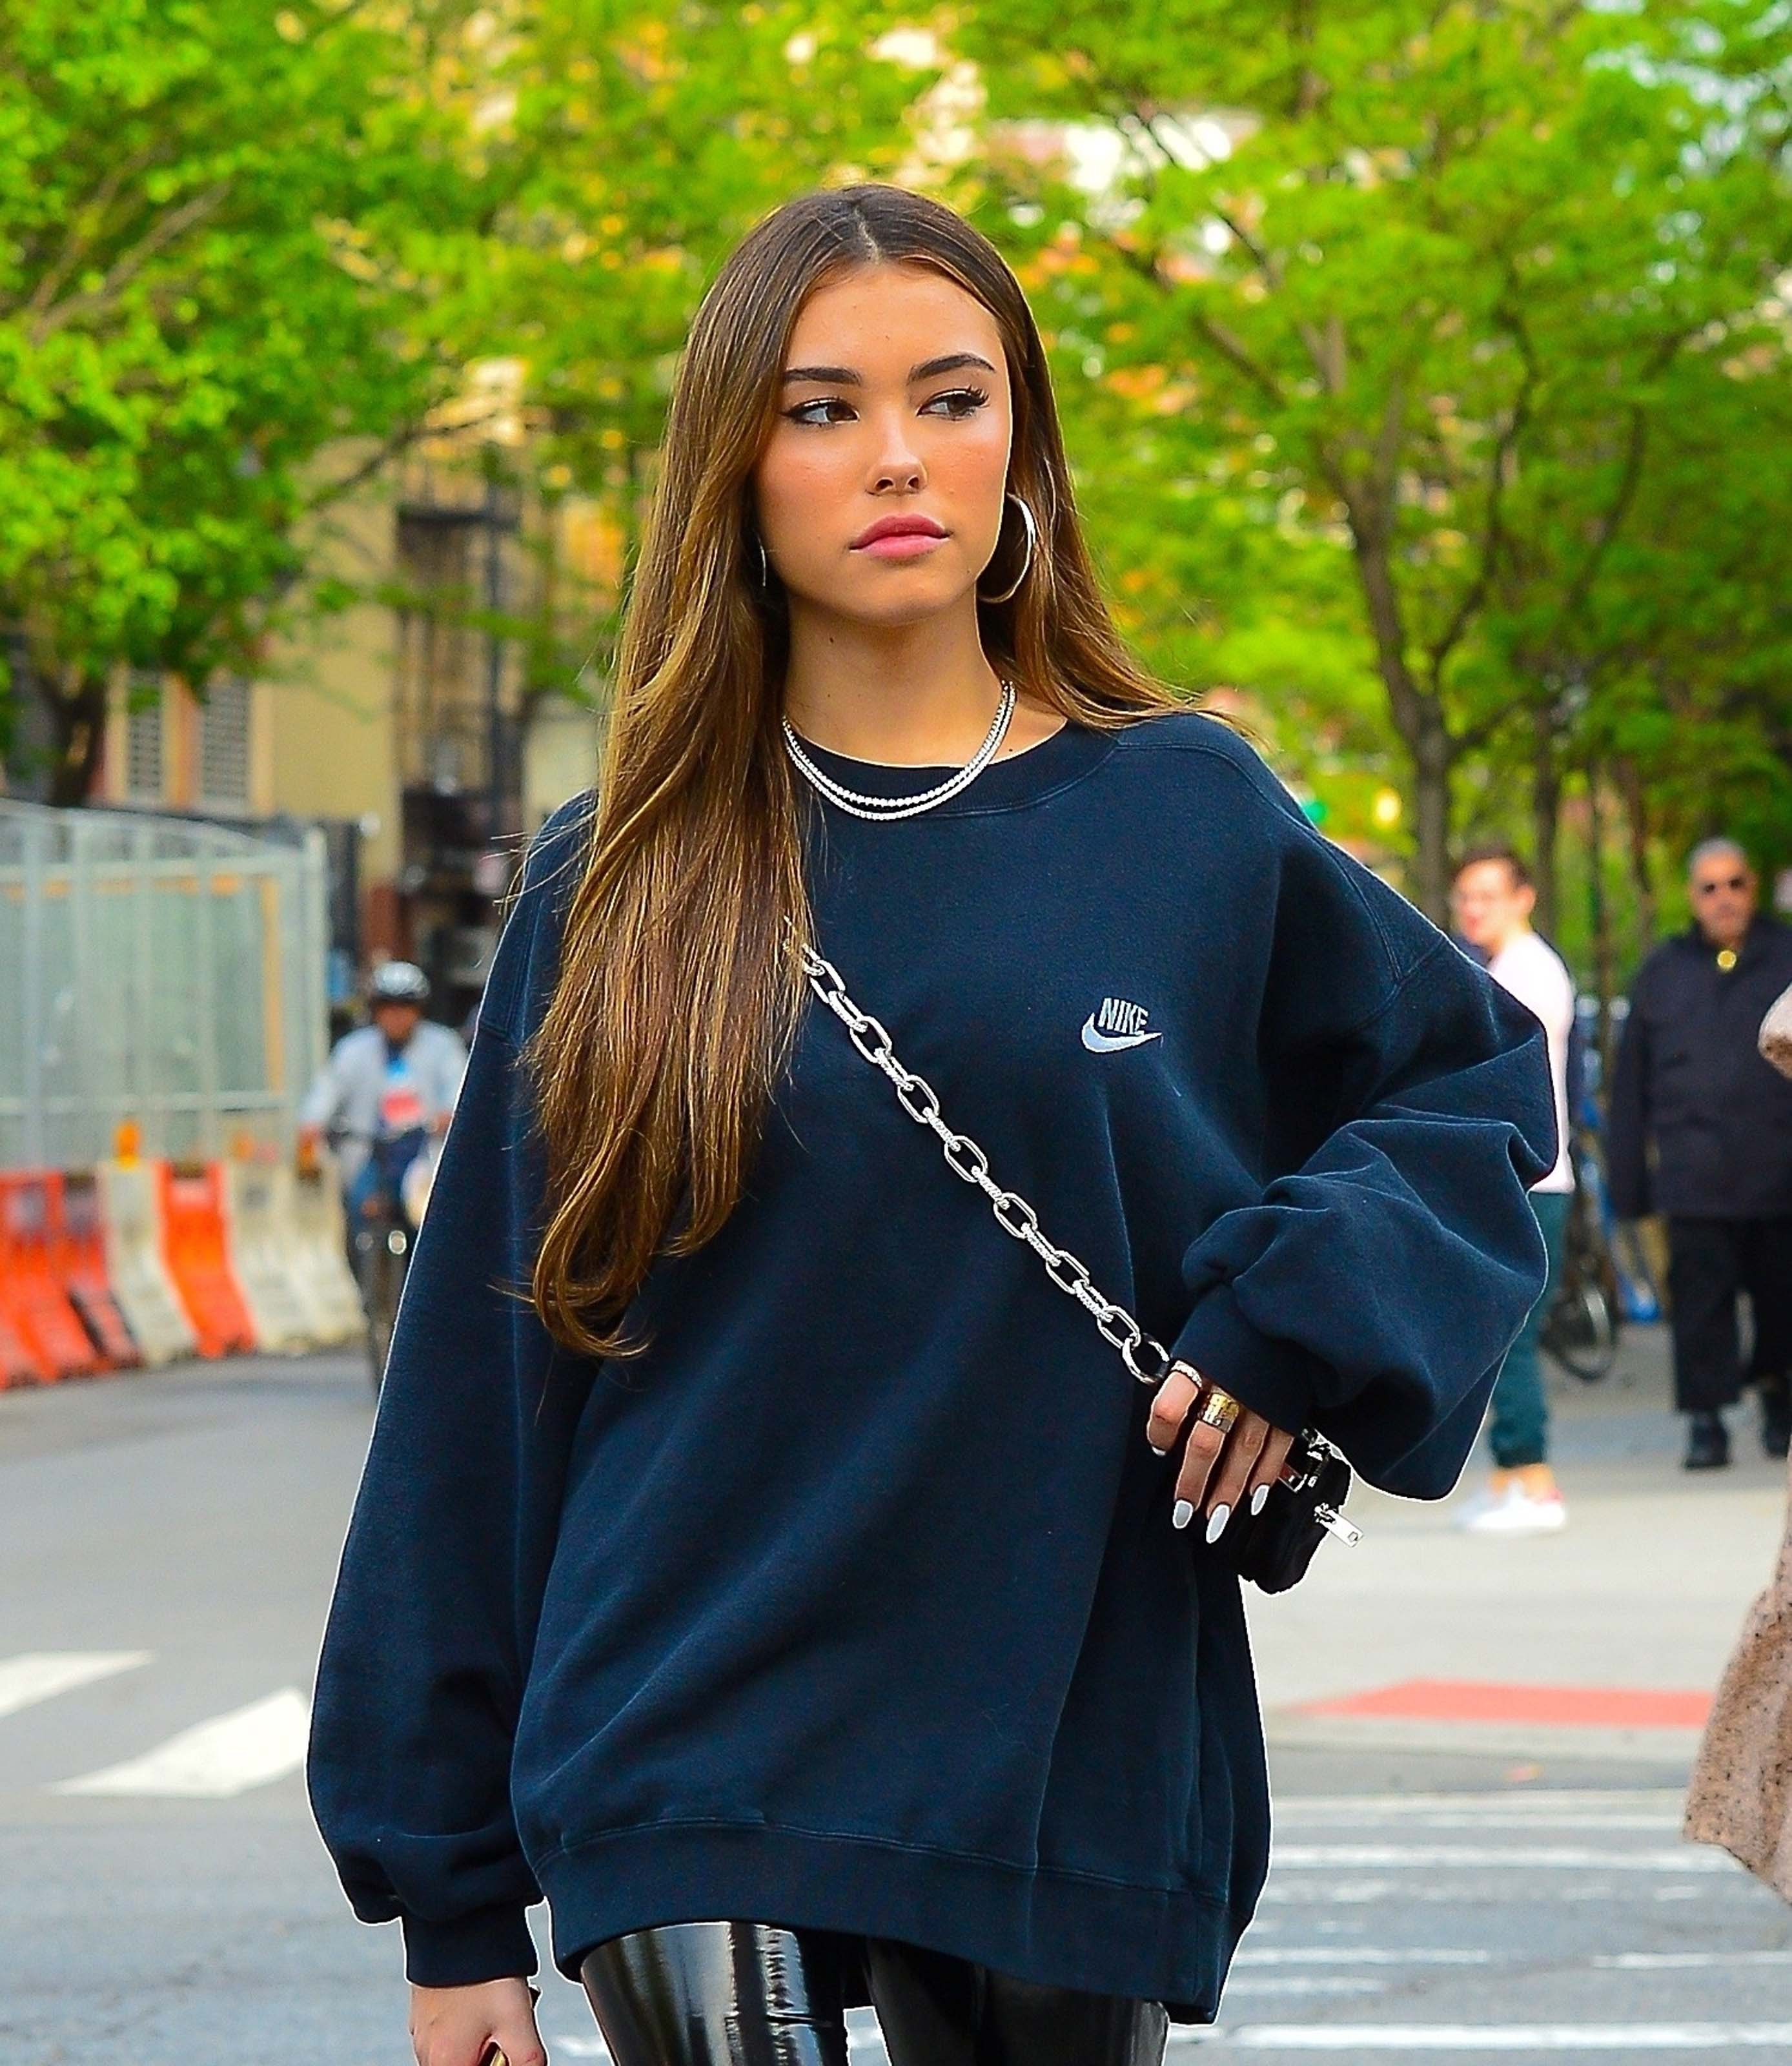 Madison Beer arrives at her New York City Hotel